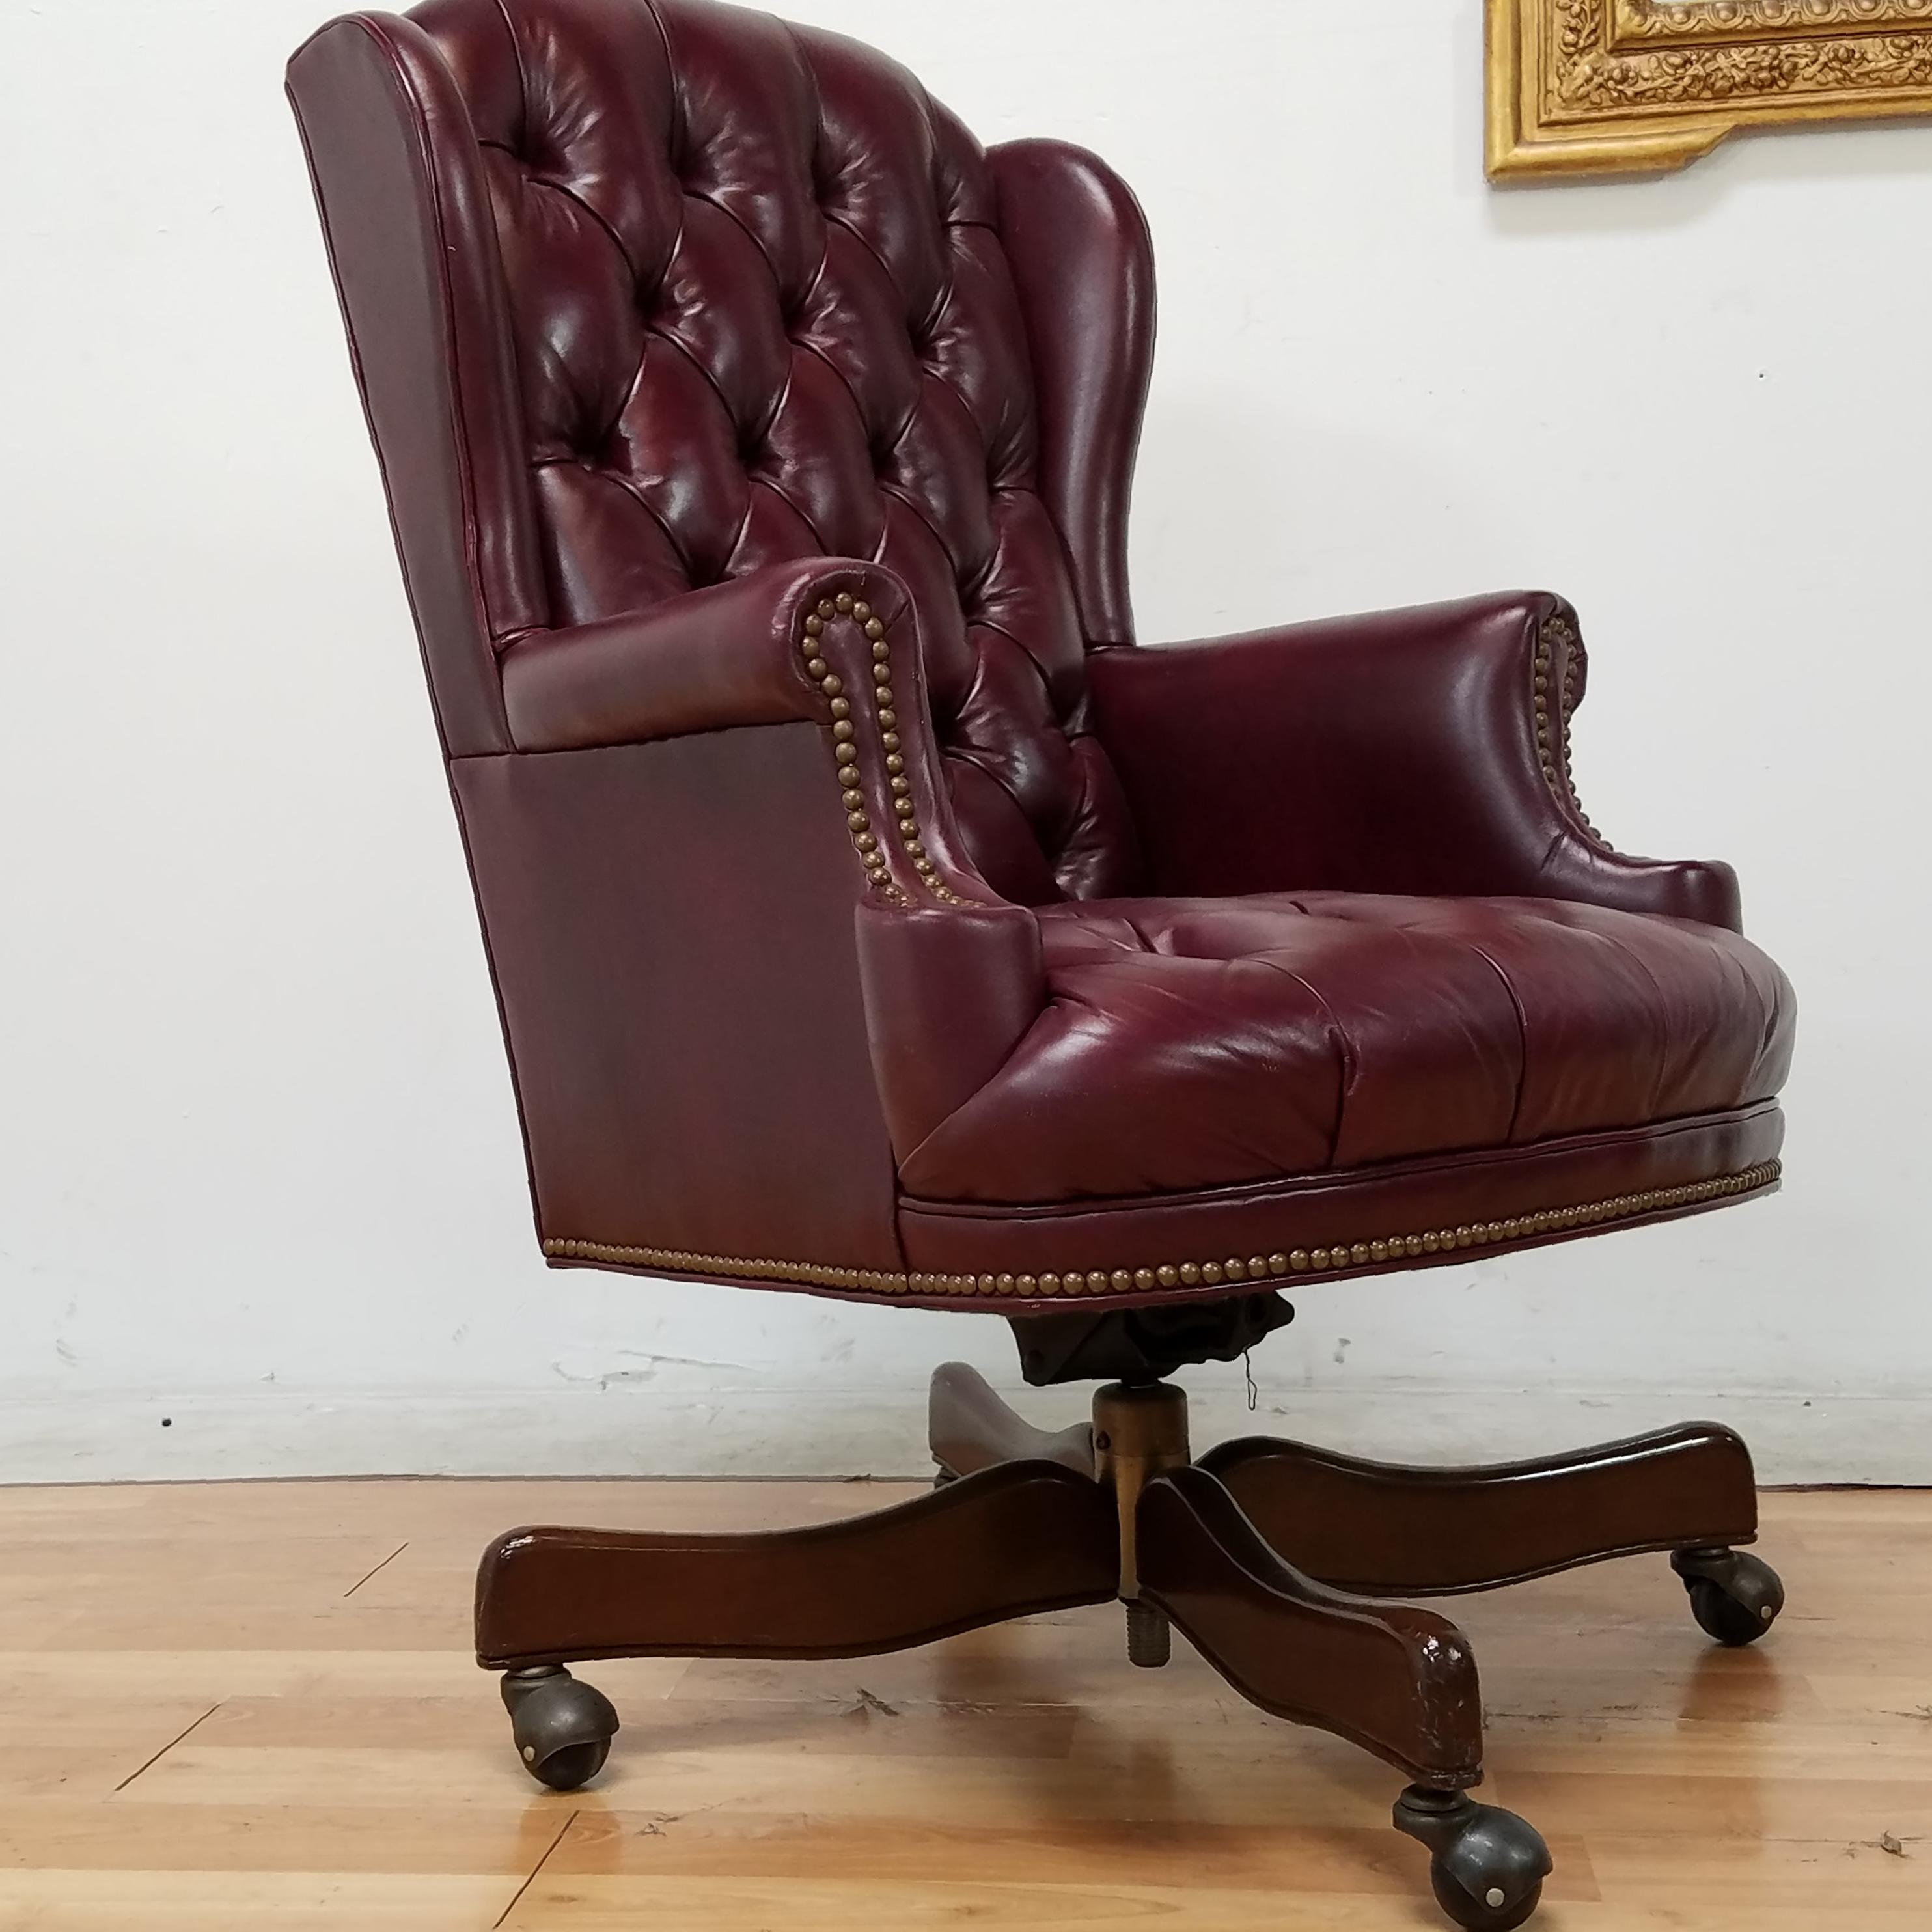 Schafer Bros Furniture 16 Chesterfield Tufted Chair Image 6 Of 7